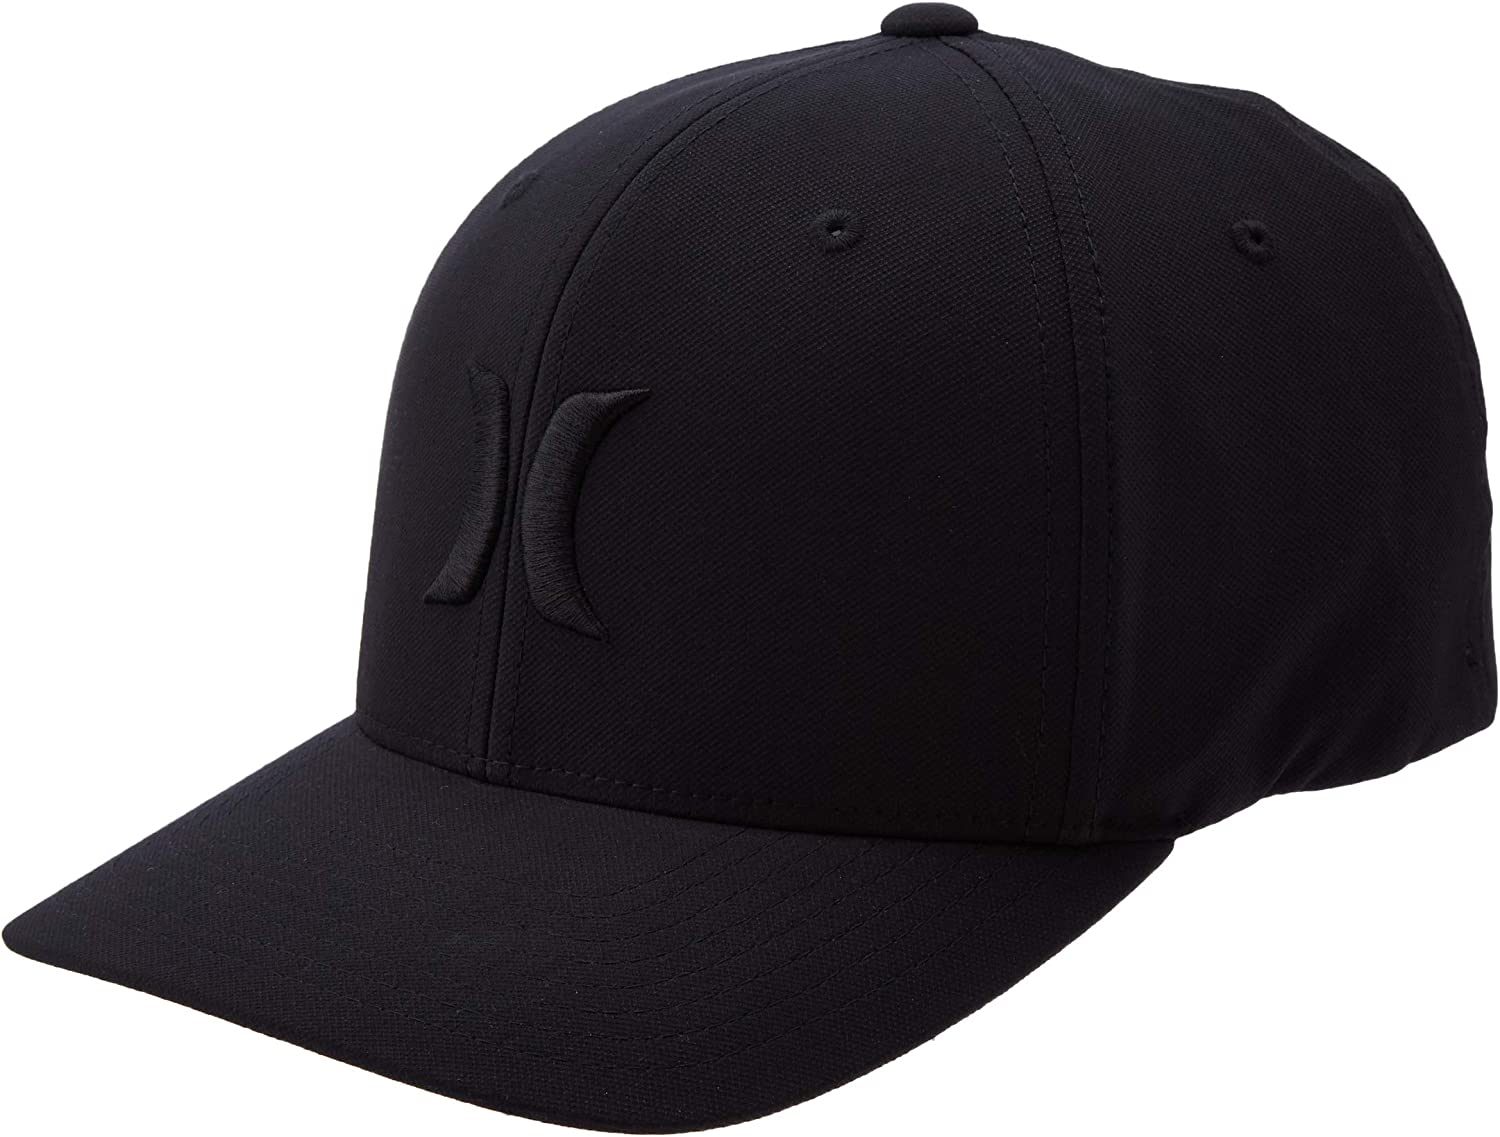 Hurley Men's Dr-fit One & Only Flexfit Baseball Cap: Clothing